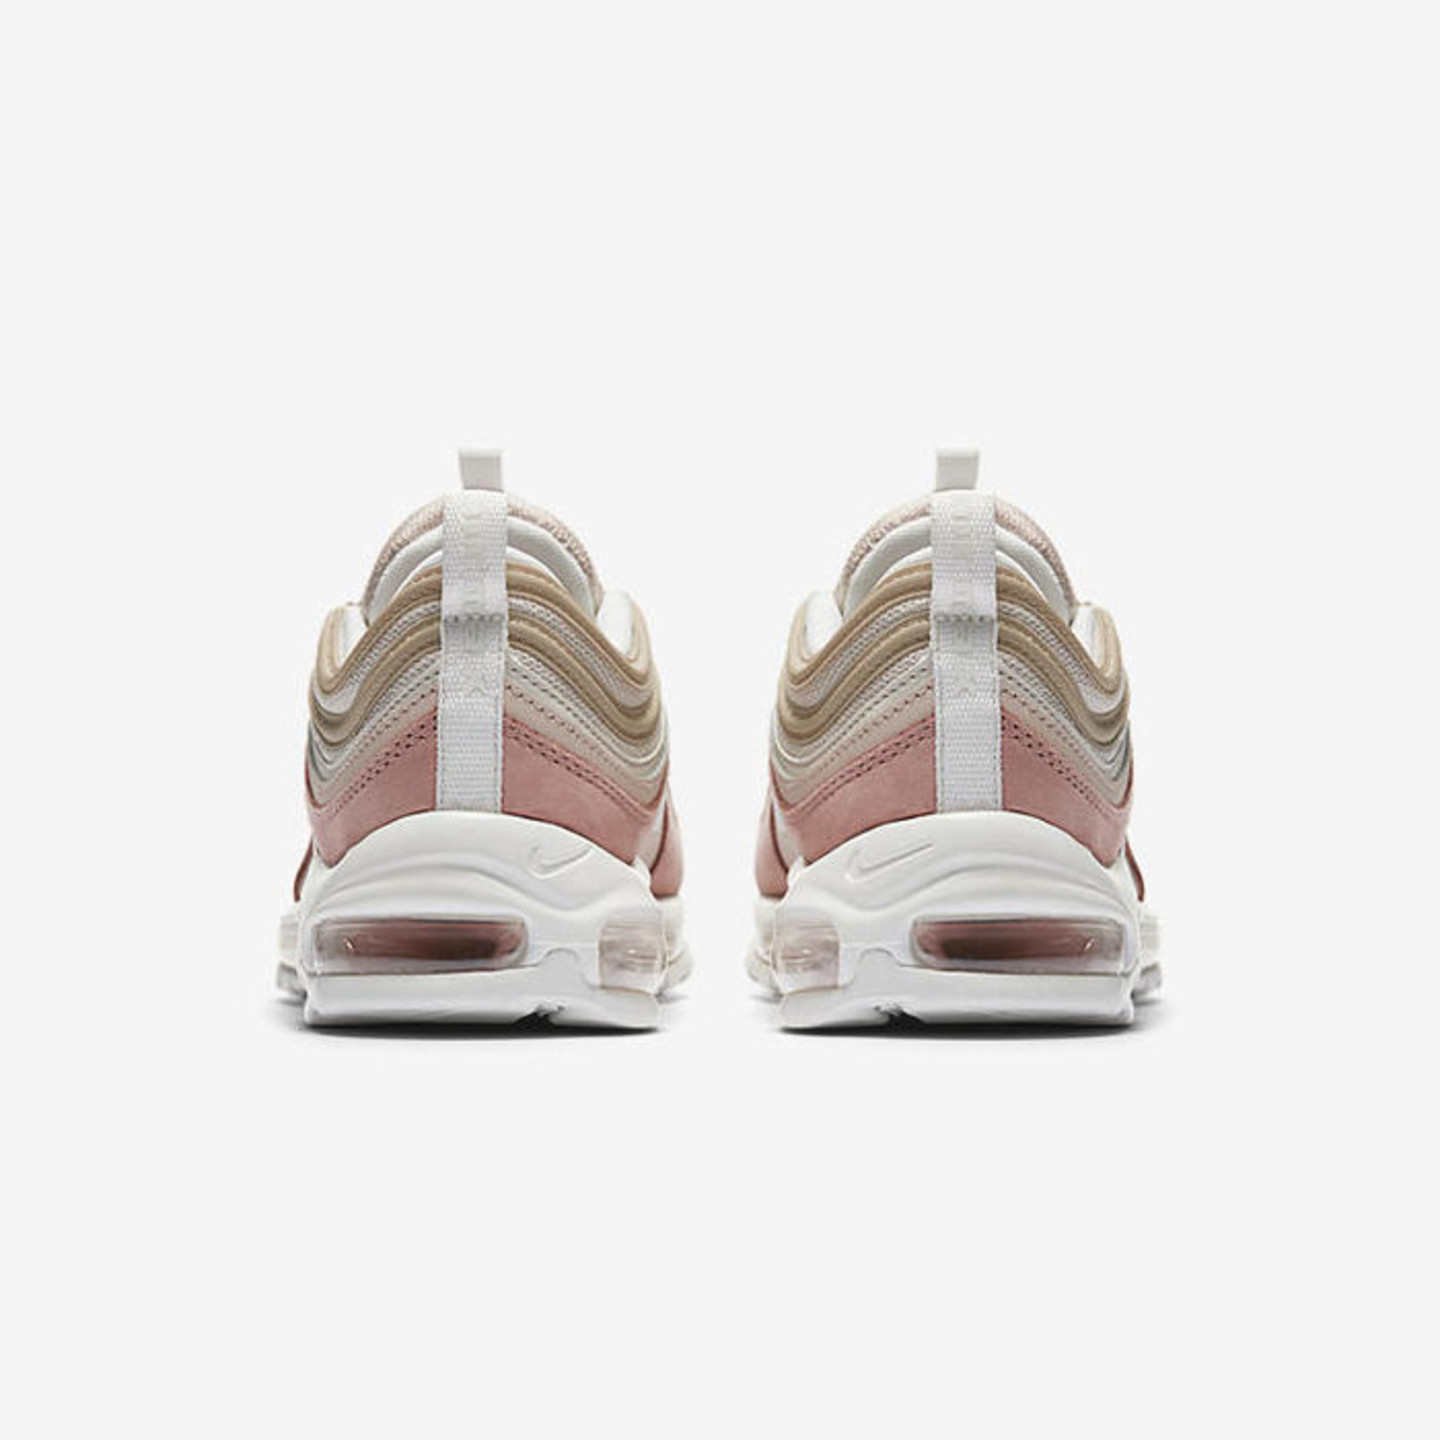 Nike Air Max 97 Premium Particle Beige / Summit White / Rush Pink 312834-200